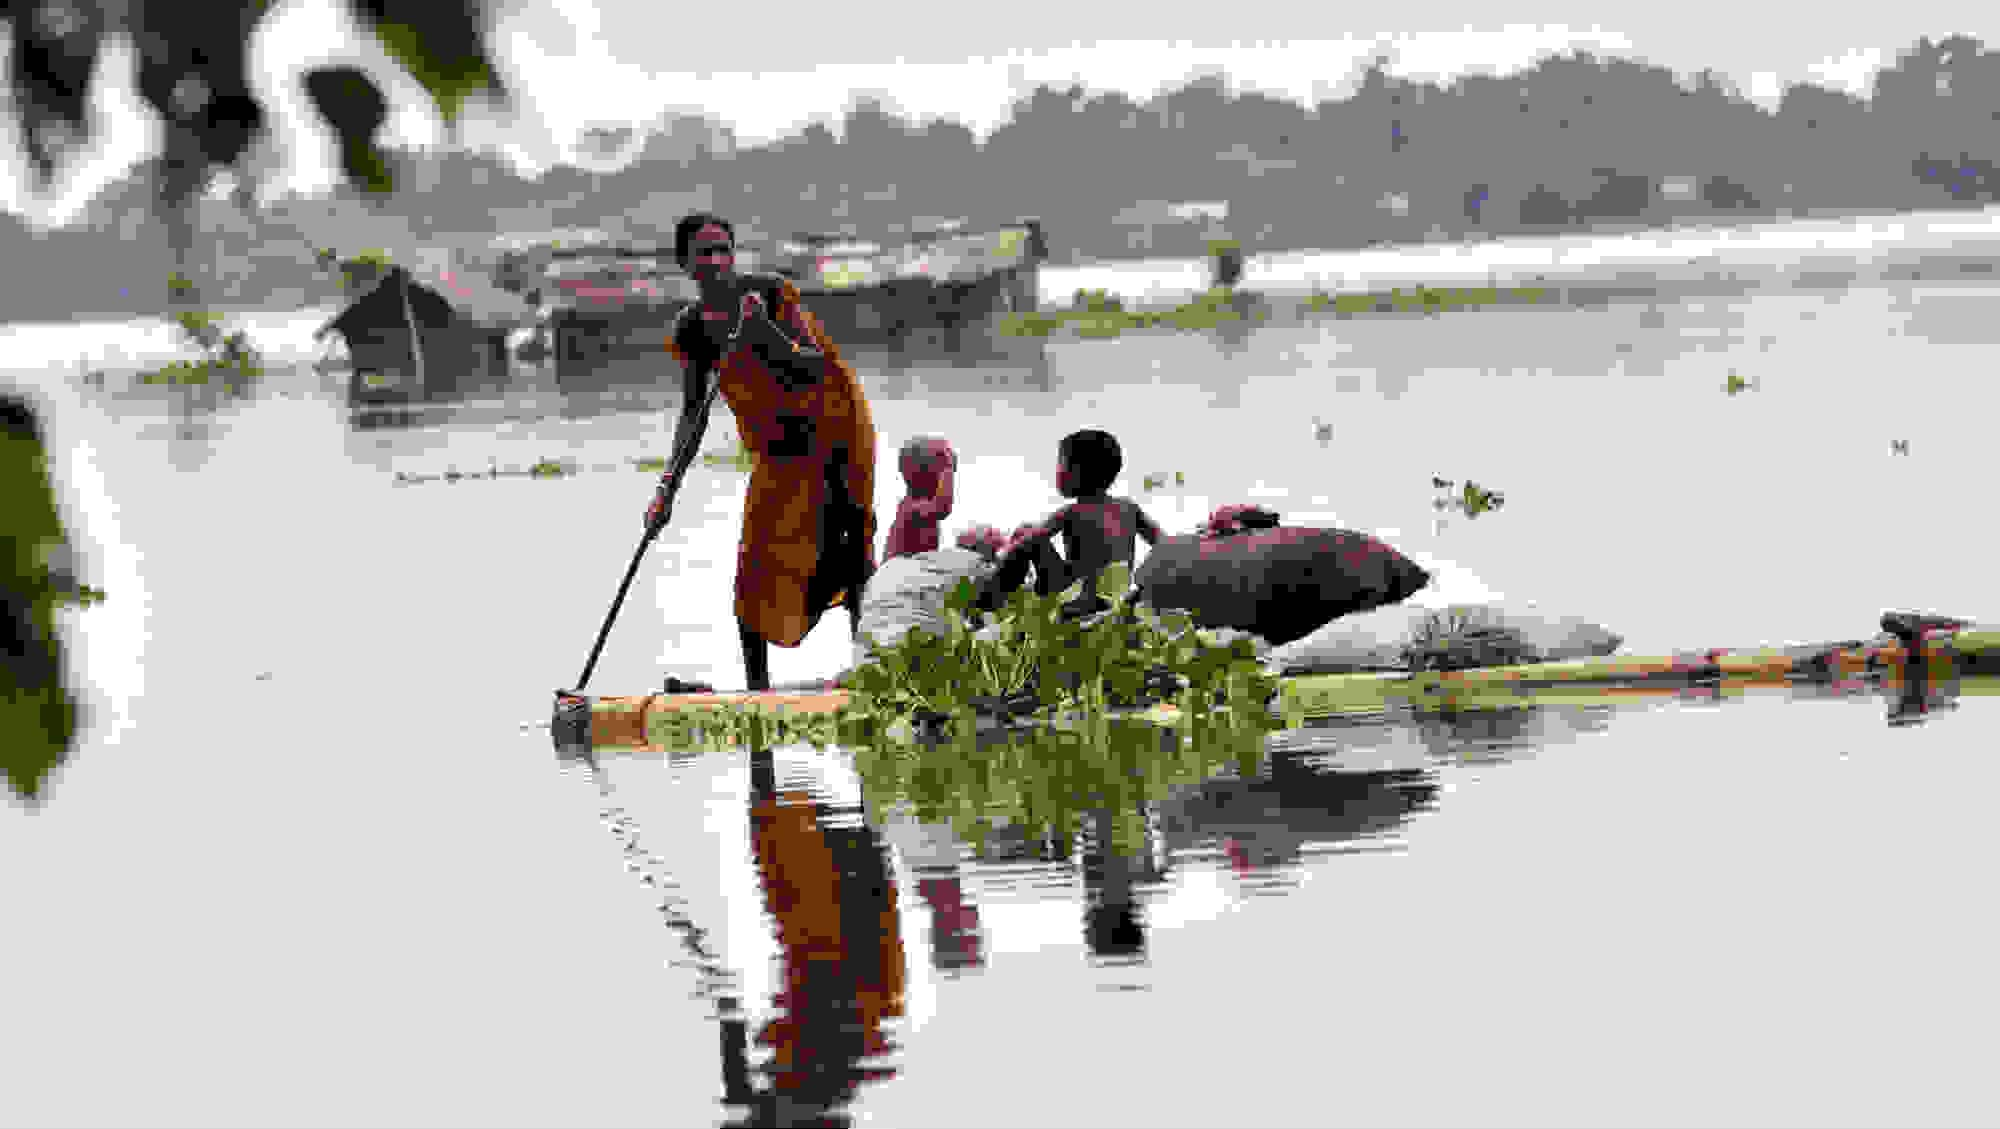 Assam floods: Biggest problems are government apathy, inefficient fund and suspected graft